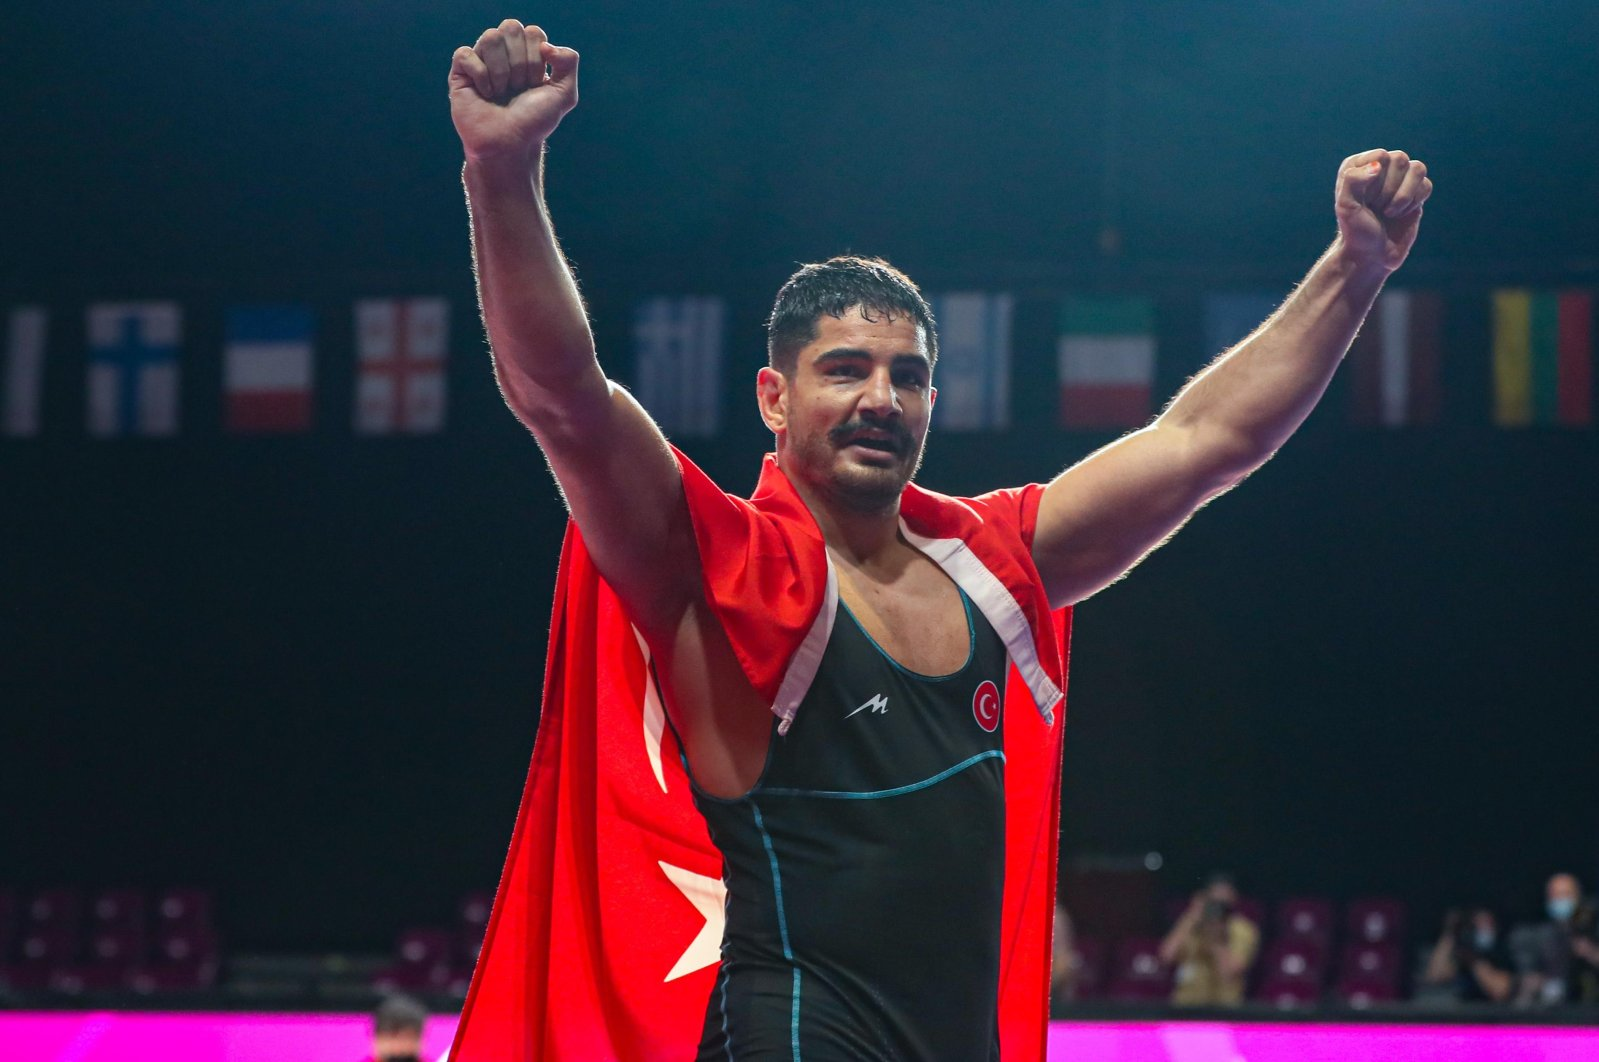 Turkish wrestler Taha Akgül celebrates winning the 125-kg gold medal match against Russia's Sergei Kozyrev at the 2021 European Wrestling Championships, in Warsaw, Poland, May 21, 2021. (AA Photo)